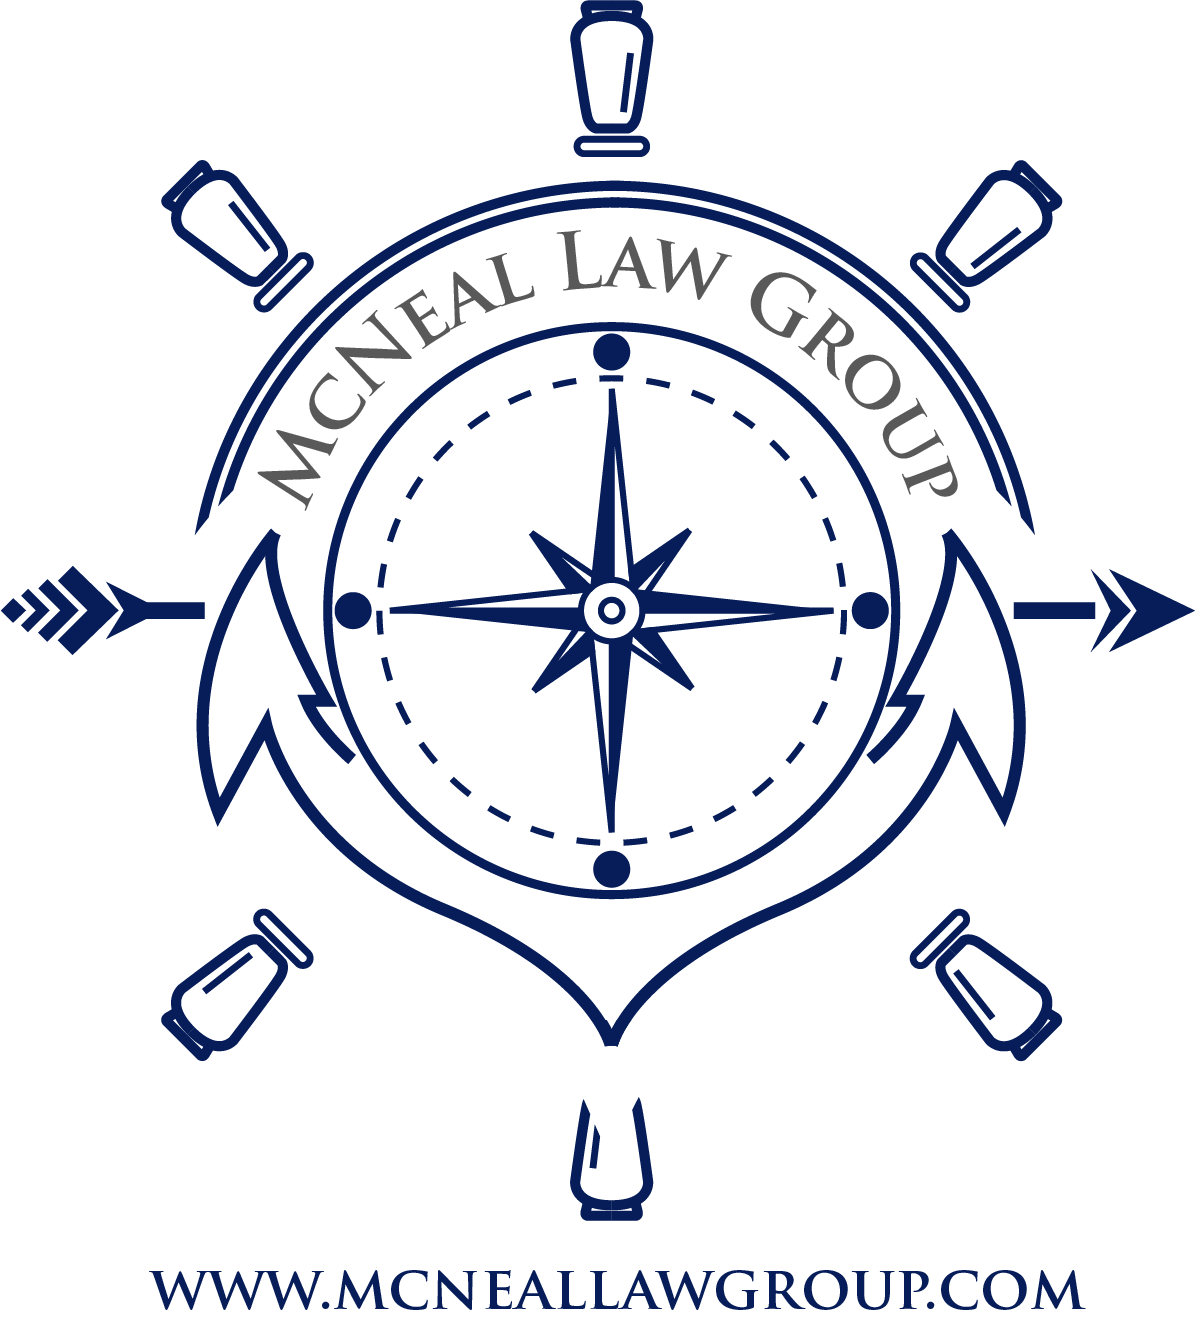 The McNeal Law Firm, a Houston Personal Injury Law Firm in TX, Representing Clients in Personal Injury Cases